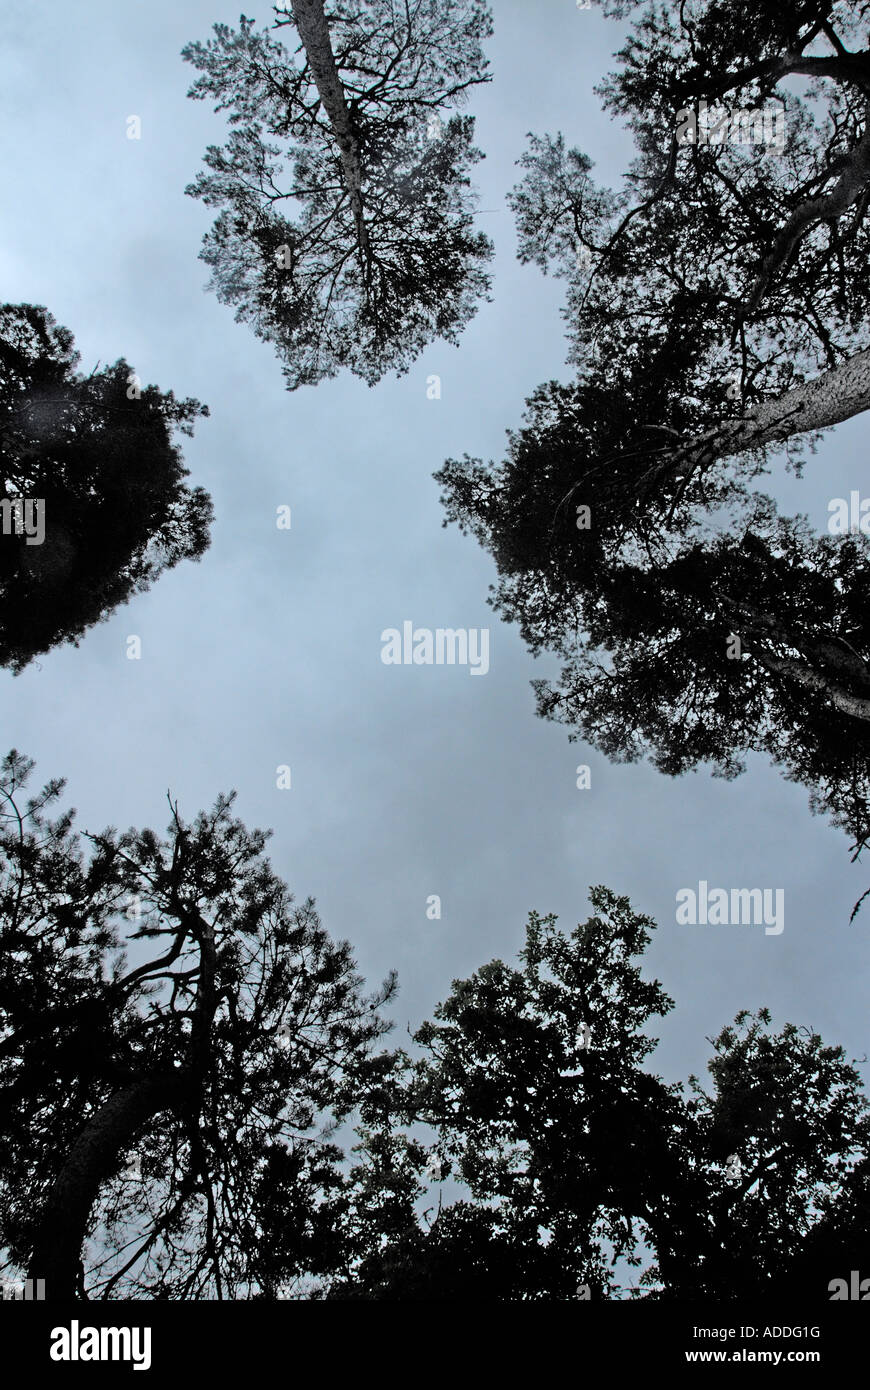 Scots pine trees. Strath Glass, Inverness-shire, Scotland, U.K., Europe. - Stock Image